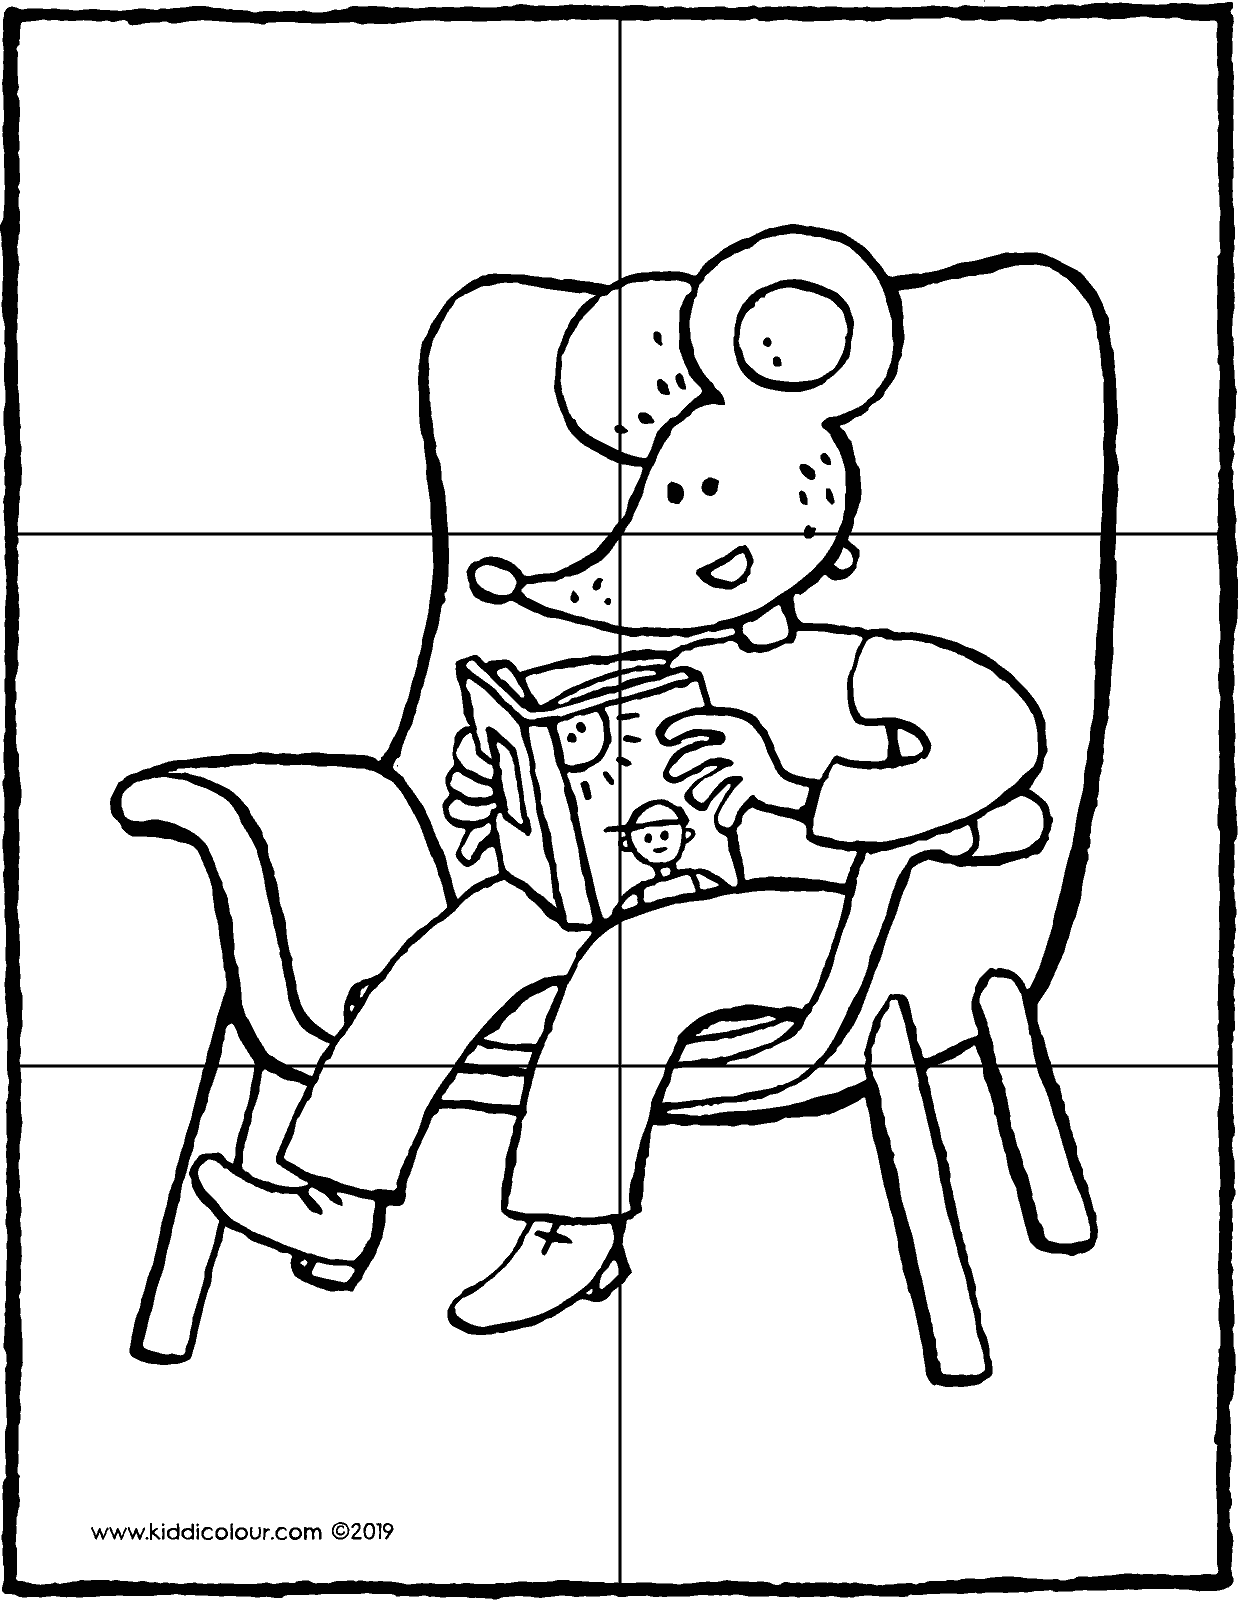 6-piece puzzle Thomas reading a book on the sofa colouring page drawing picture 01V